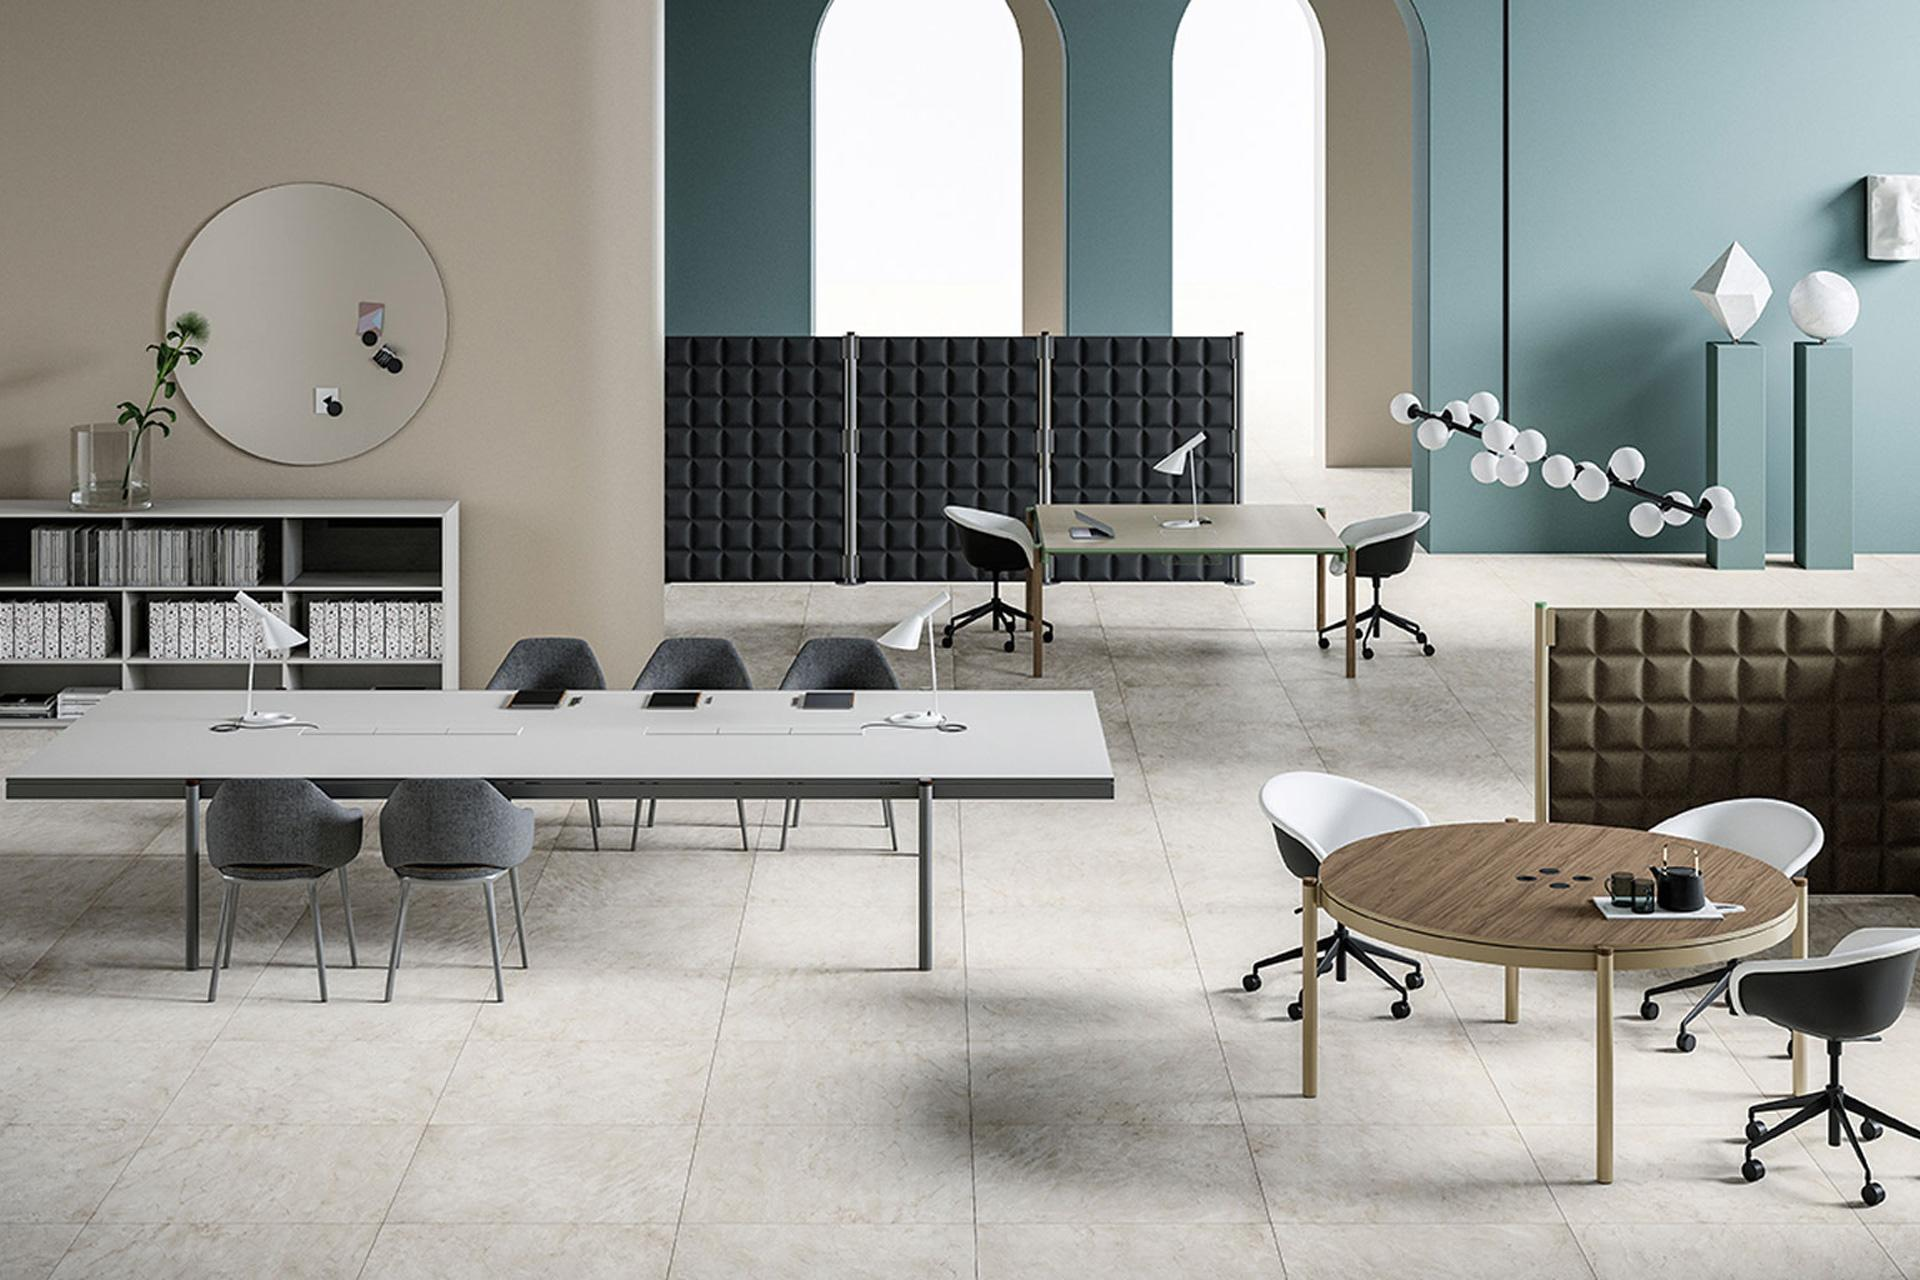 Bahlara conference table